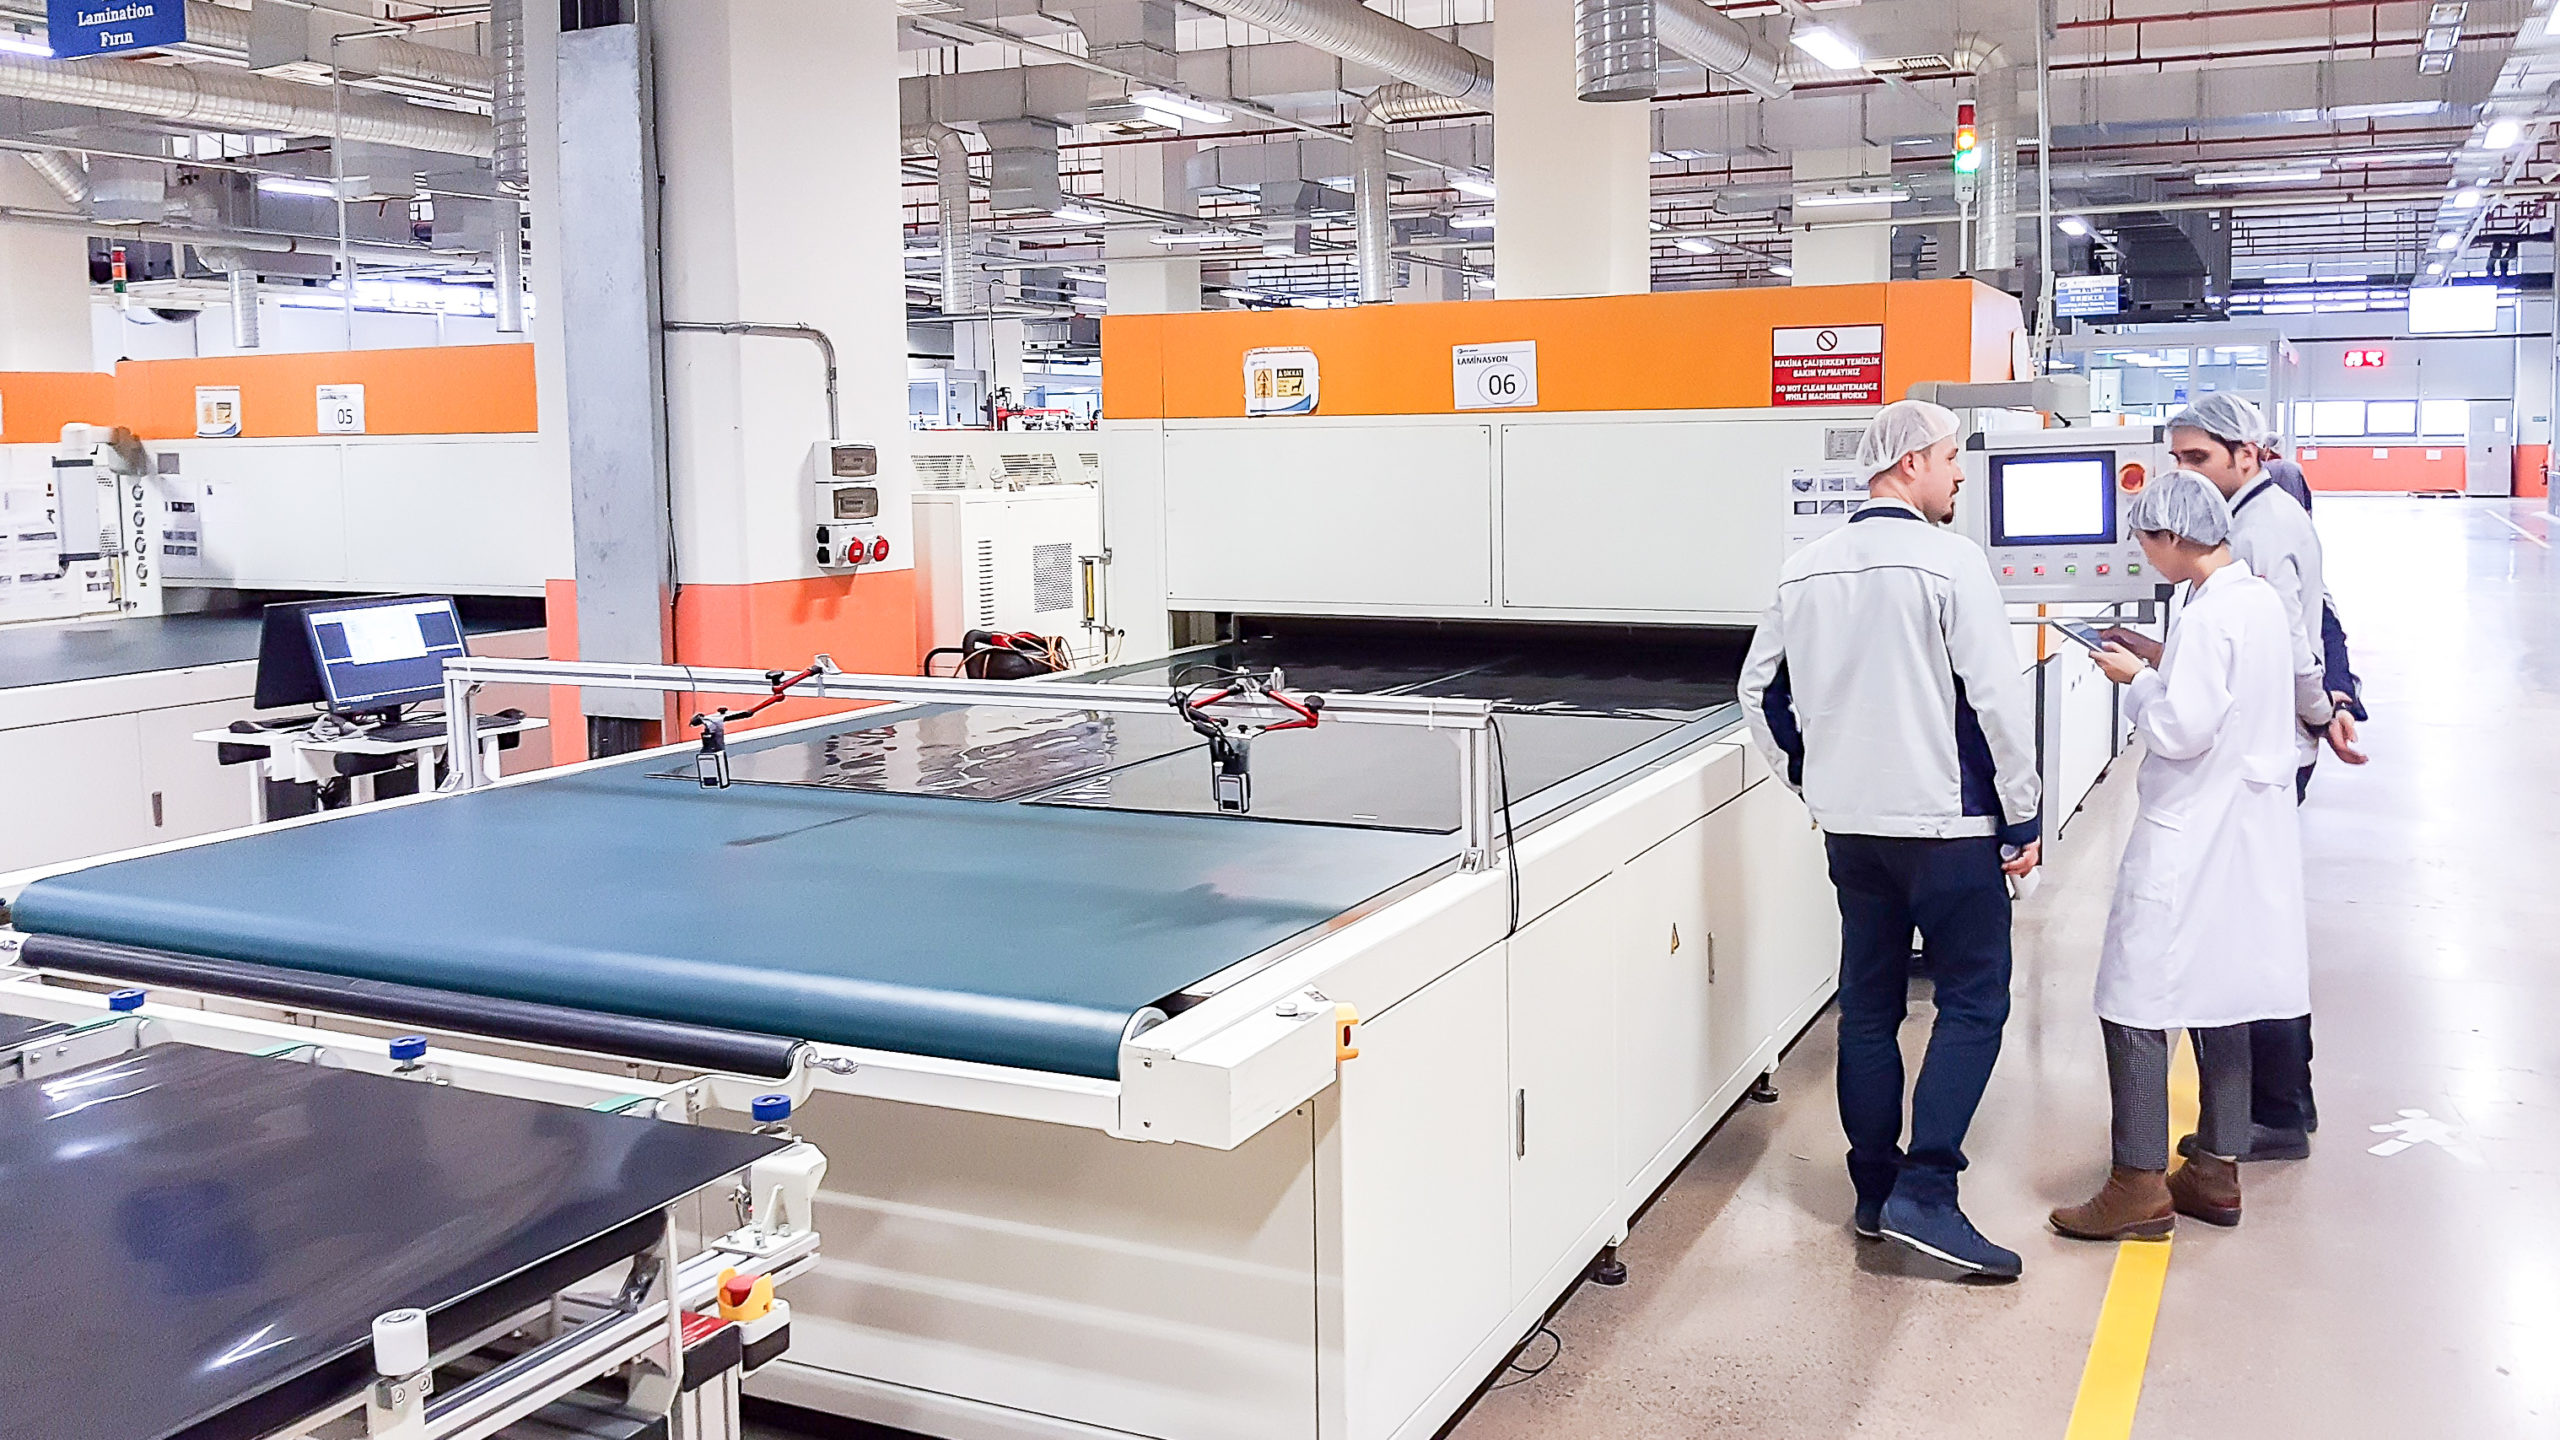 The Photovoltaik-Institut Berlin (PI Berlin) has released a new study analysing over time its solar PV panel quality control audits that have topped 250 at more than 120 panel manufacturers worldwide to highlight the current status of 'quality'. Image: PI Berlin